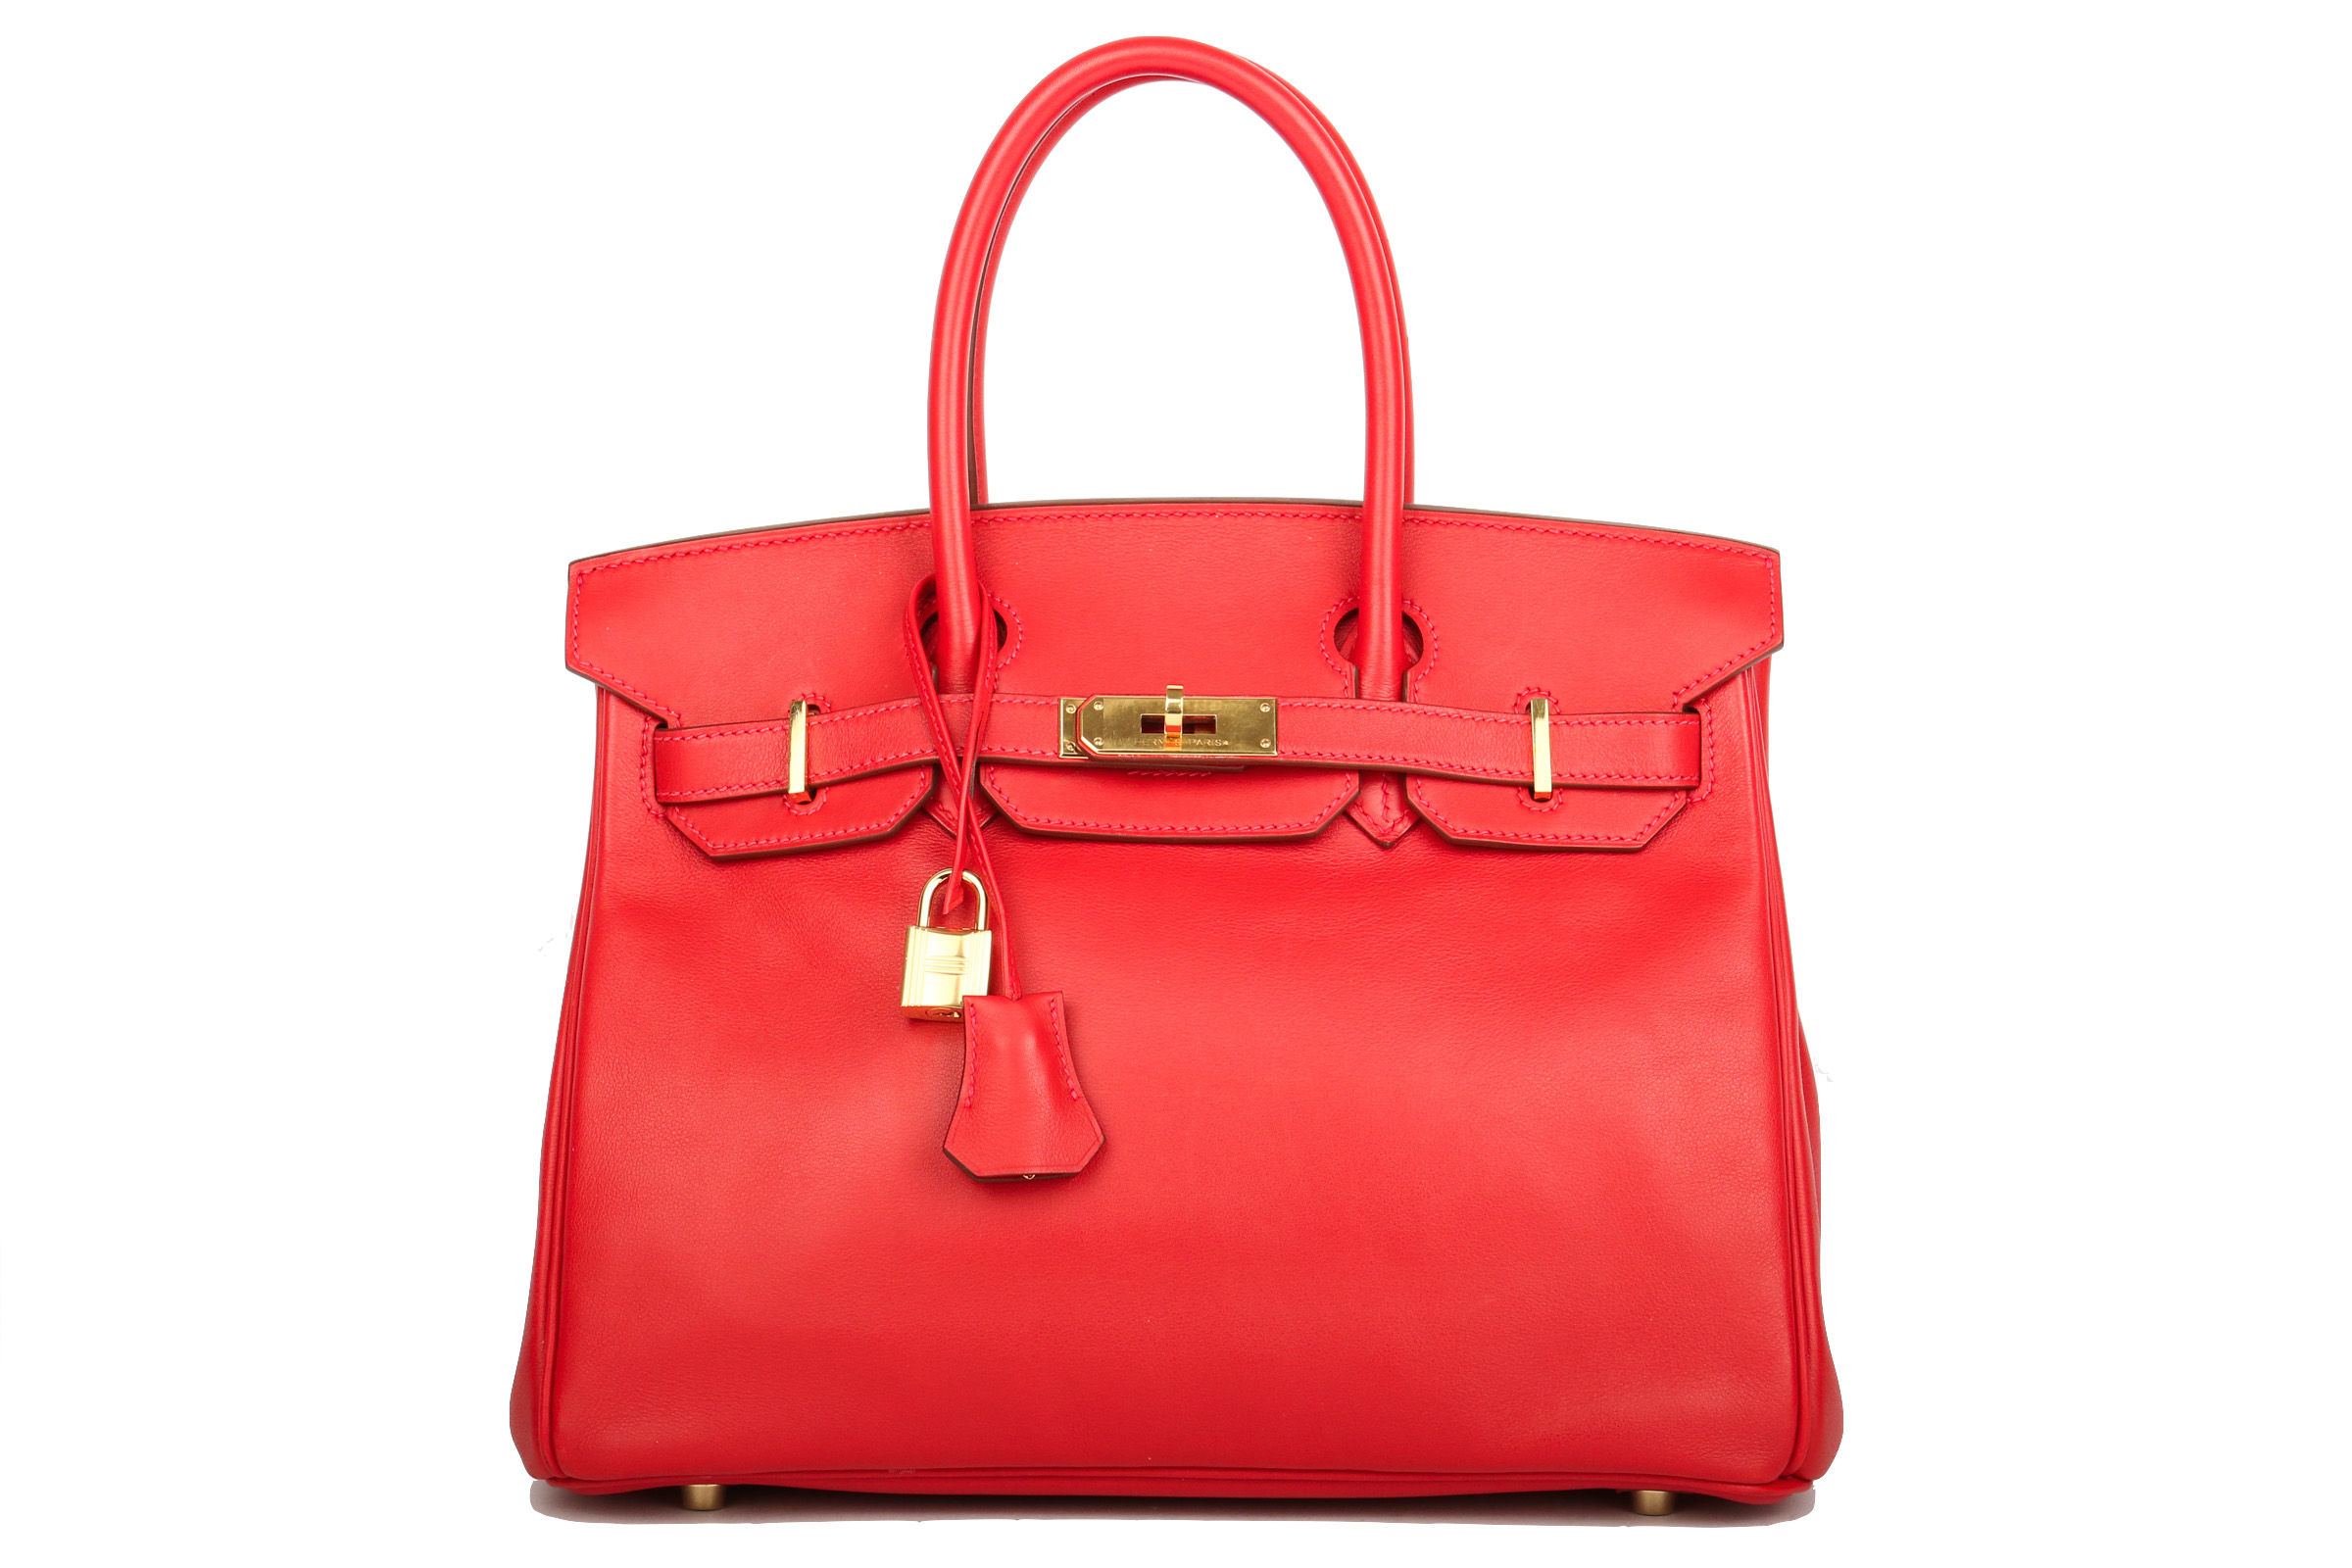 Hermès Birkin 30 Rot Swift Leder   Luxussachen.com e08bb4d186